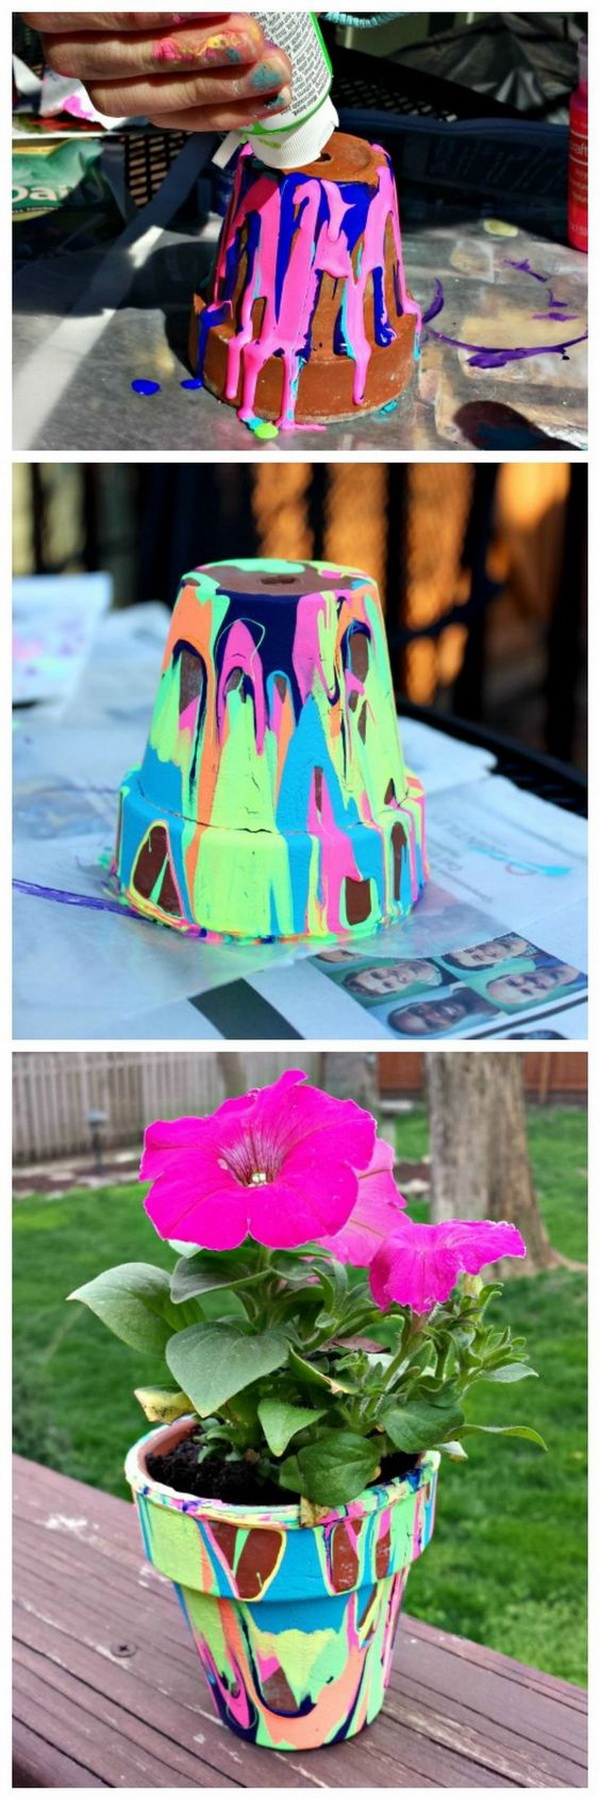 DIY Rainbow Painting Garden Pot: This colorful painting pot will brighten up any yard or room! It makes a perfect gift for Mother'd Day or Teacher'S Day.